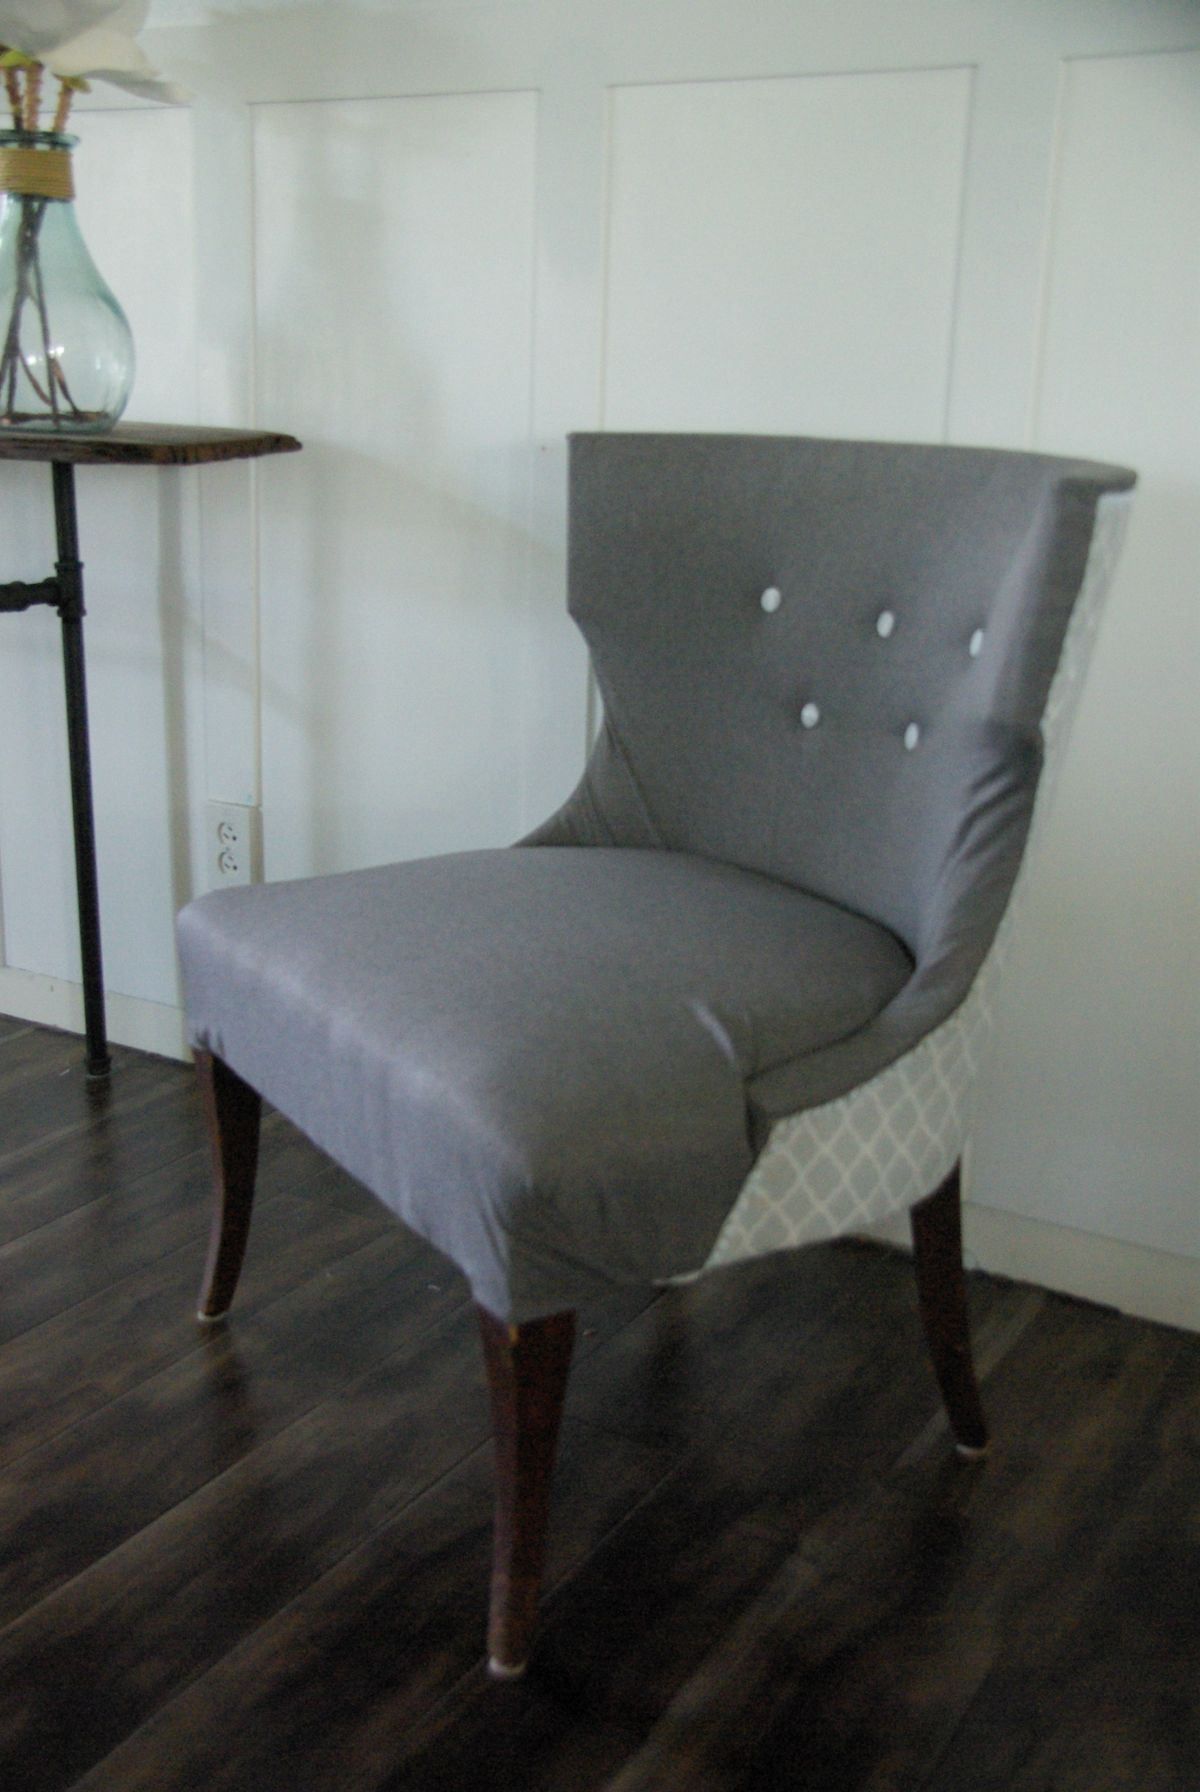 NoSew Full Reupholster Chair